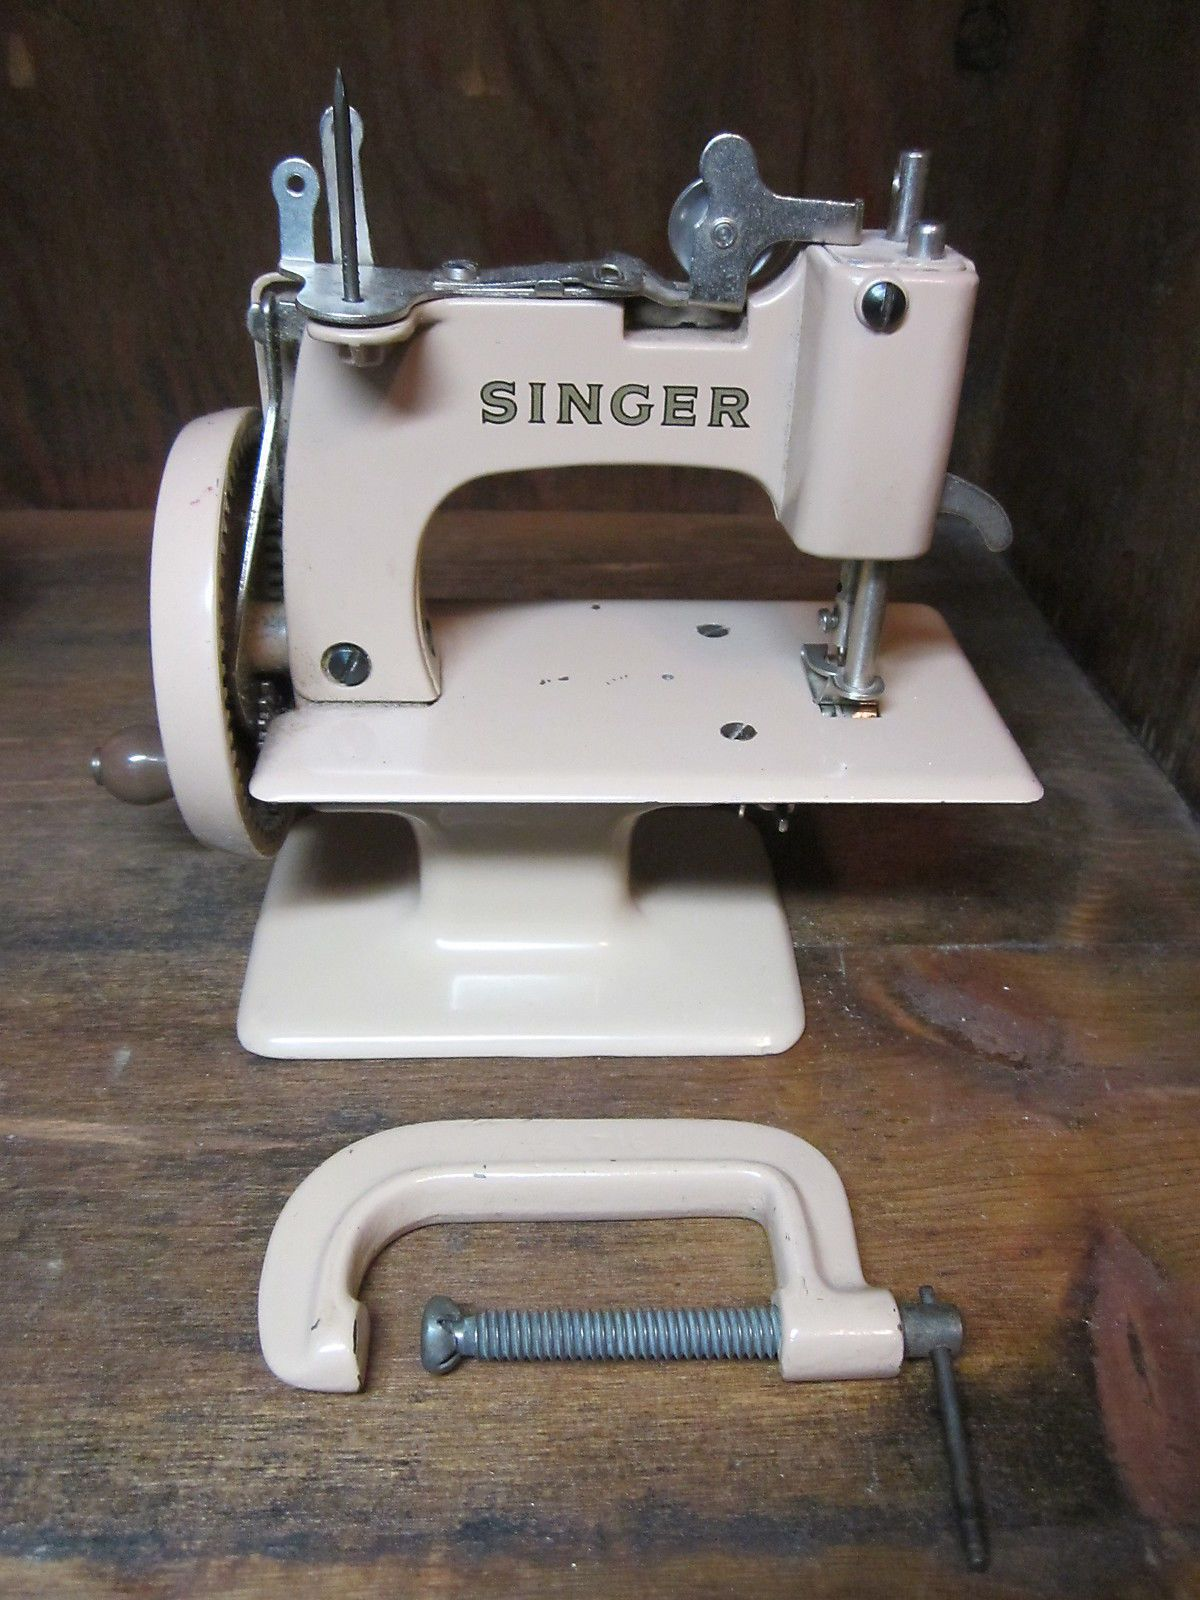 details about vintage singer sewing machine model 301 untested as is ez wiring harness kit http wwwvendiocom stores sewingvintage item [ 1200 x 1600 Pixel ]